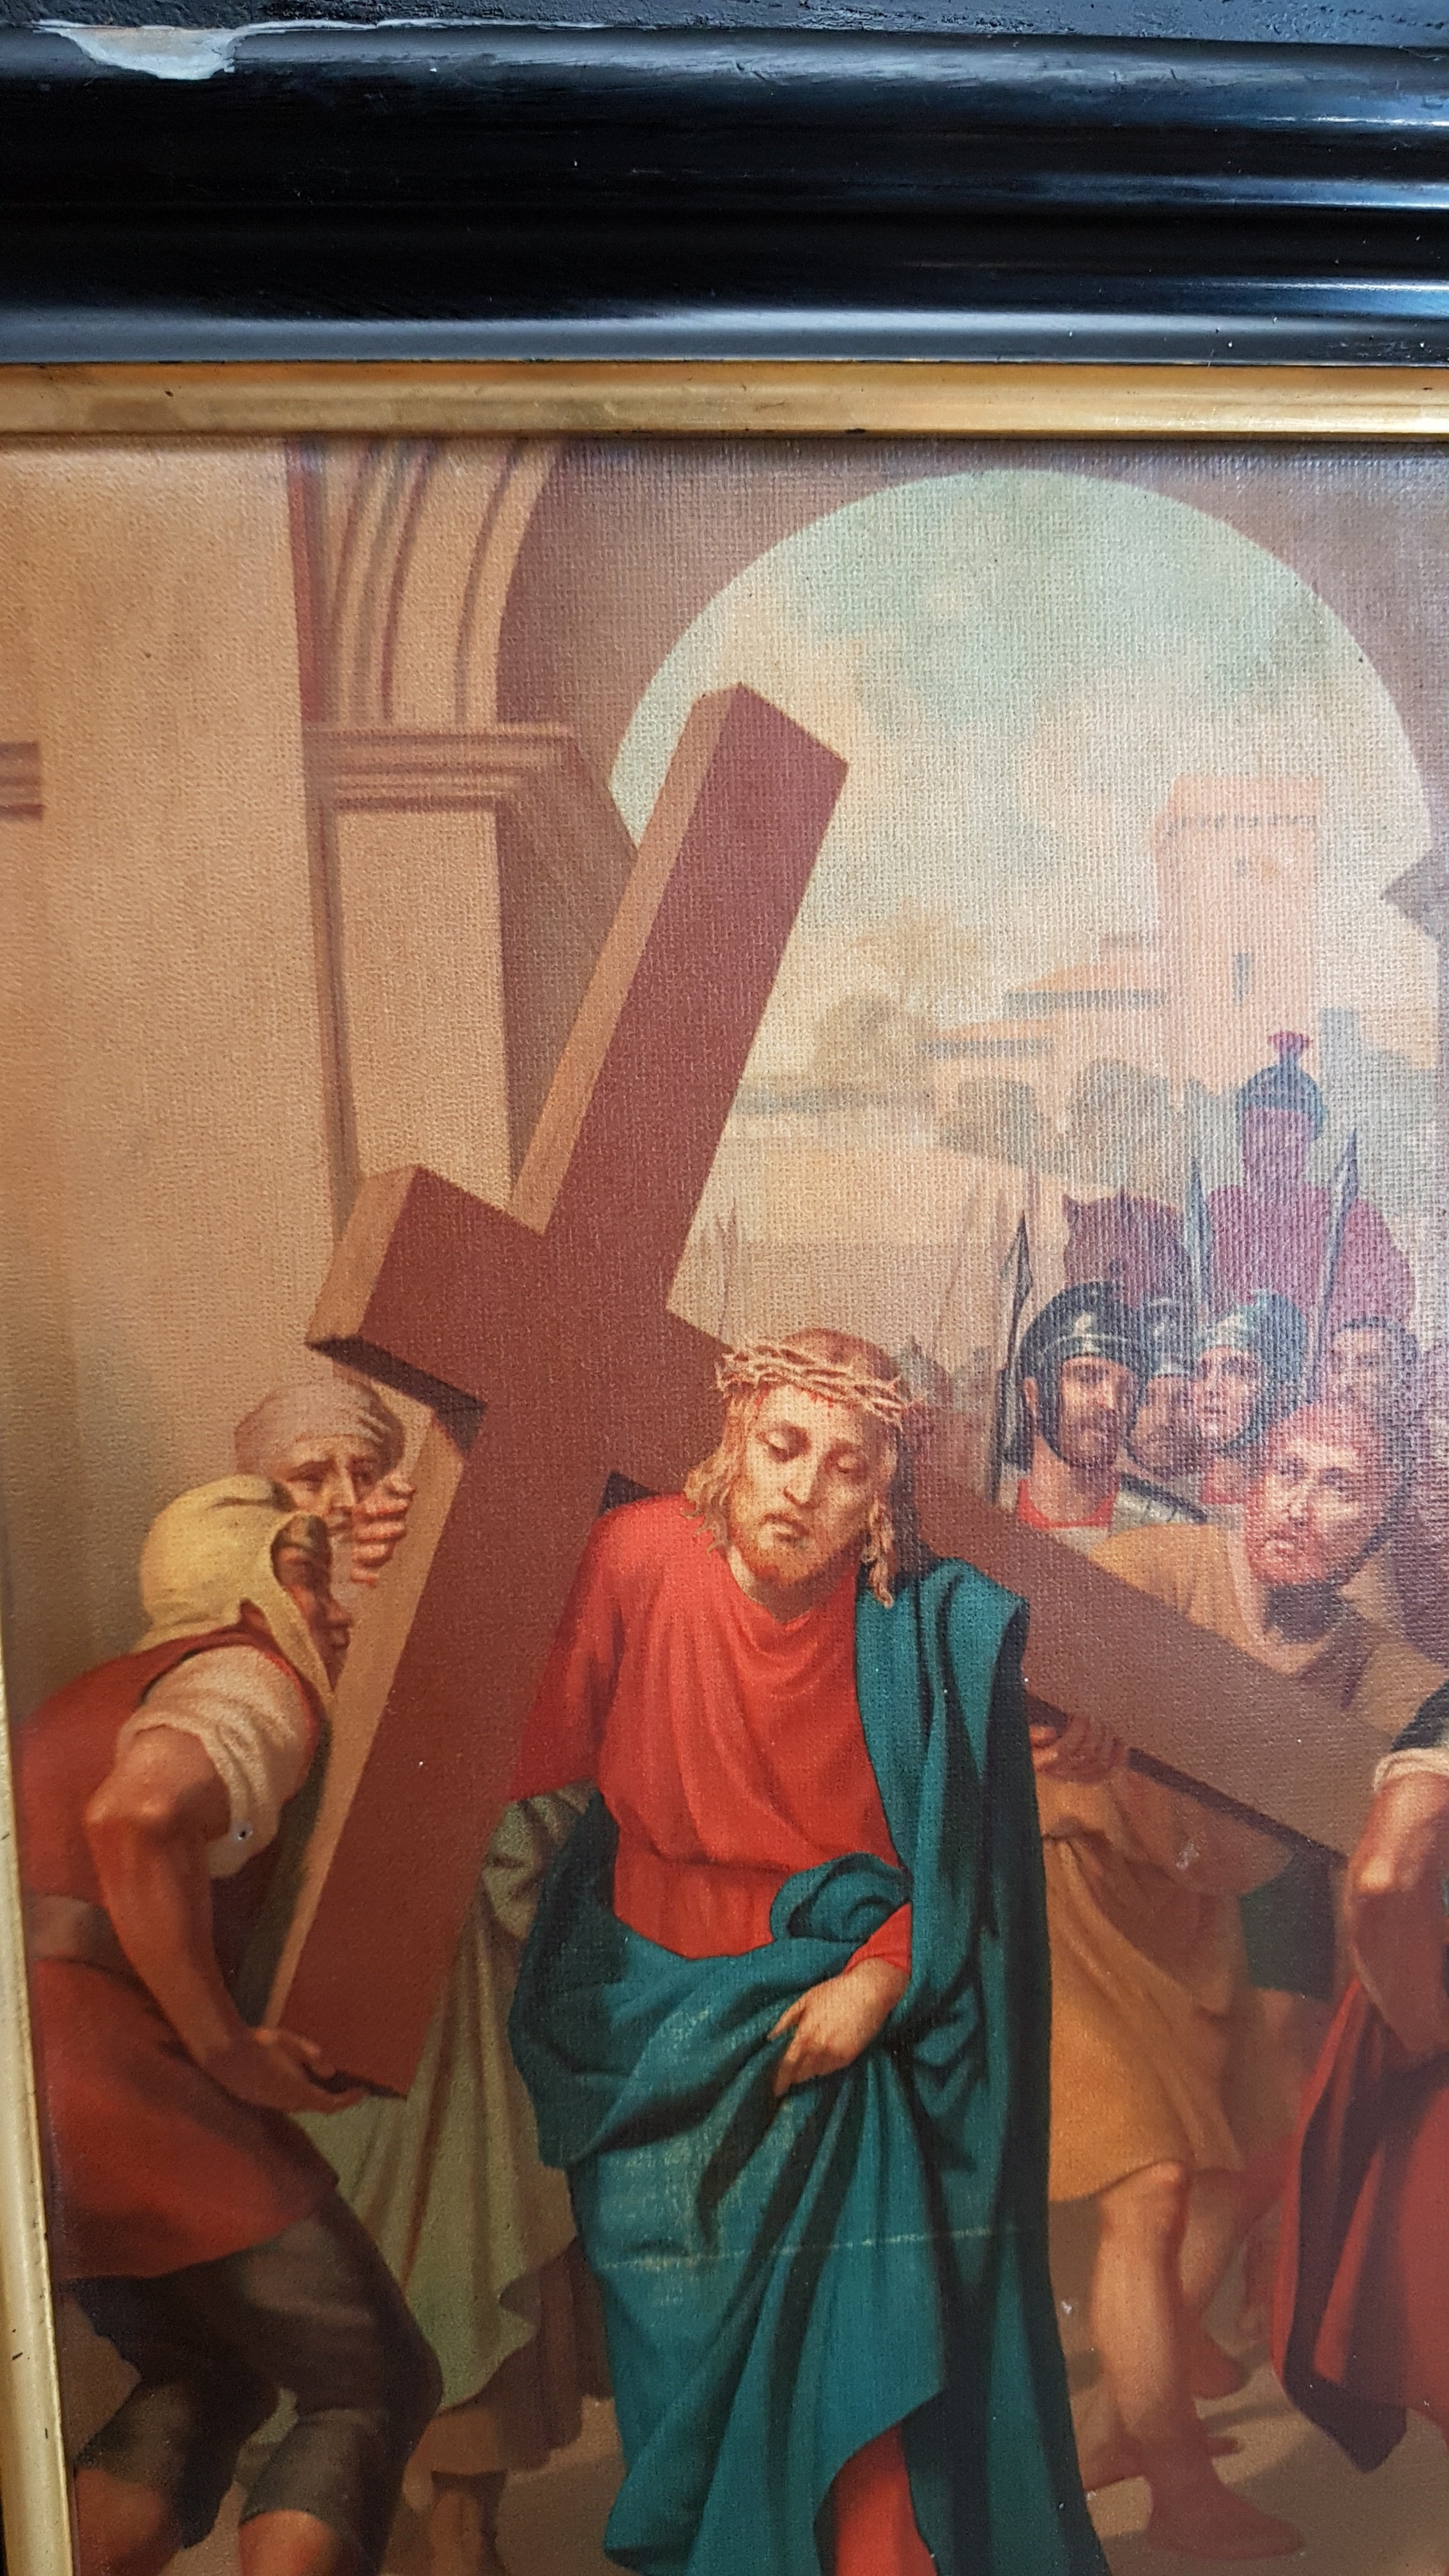 Antique station of the cross II. Jesus carries his cross.